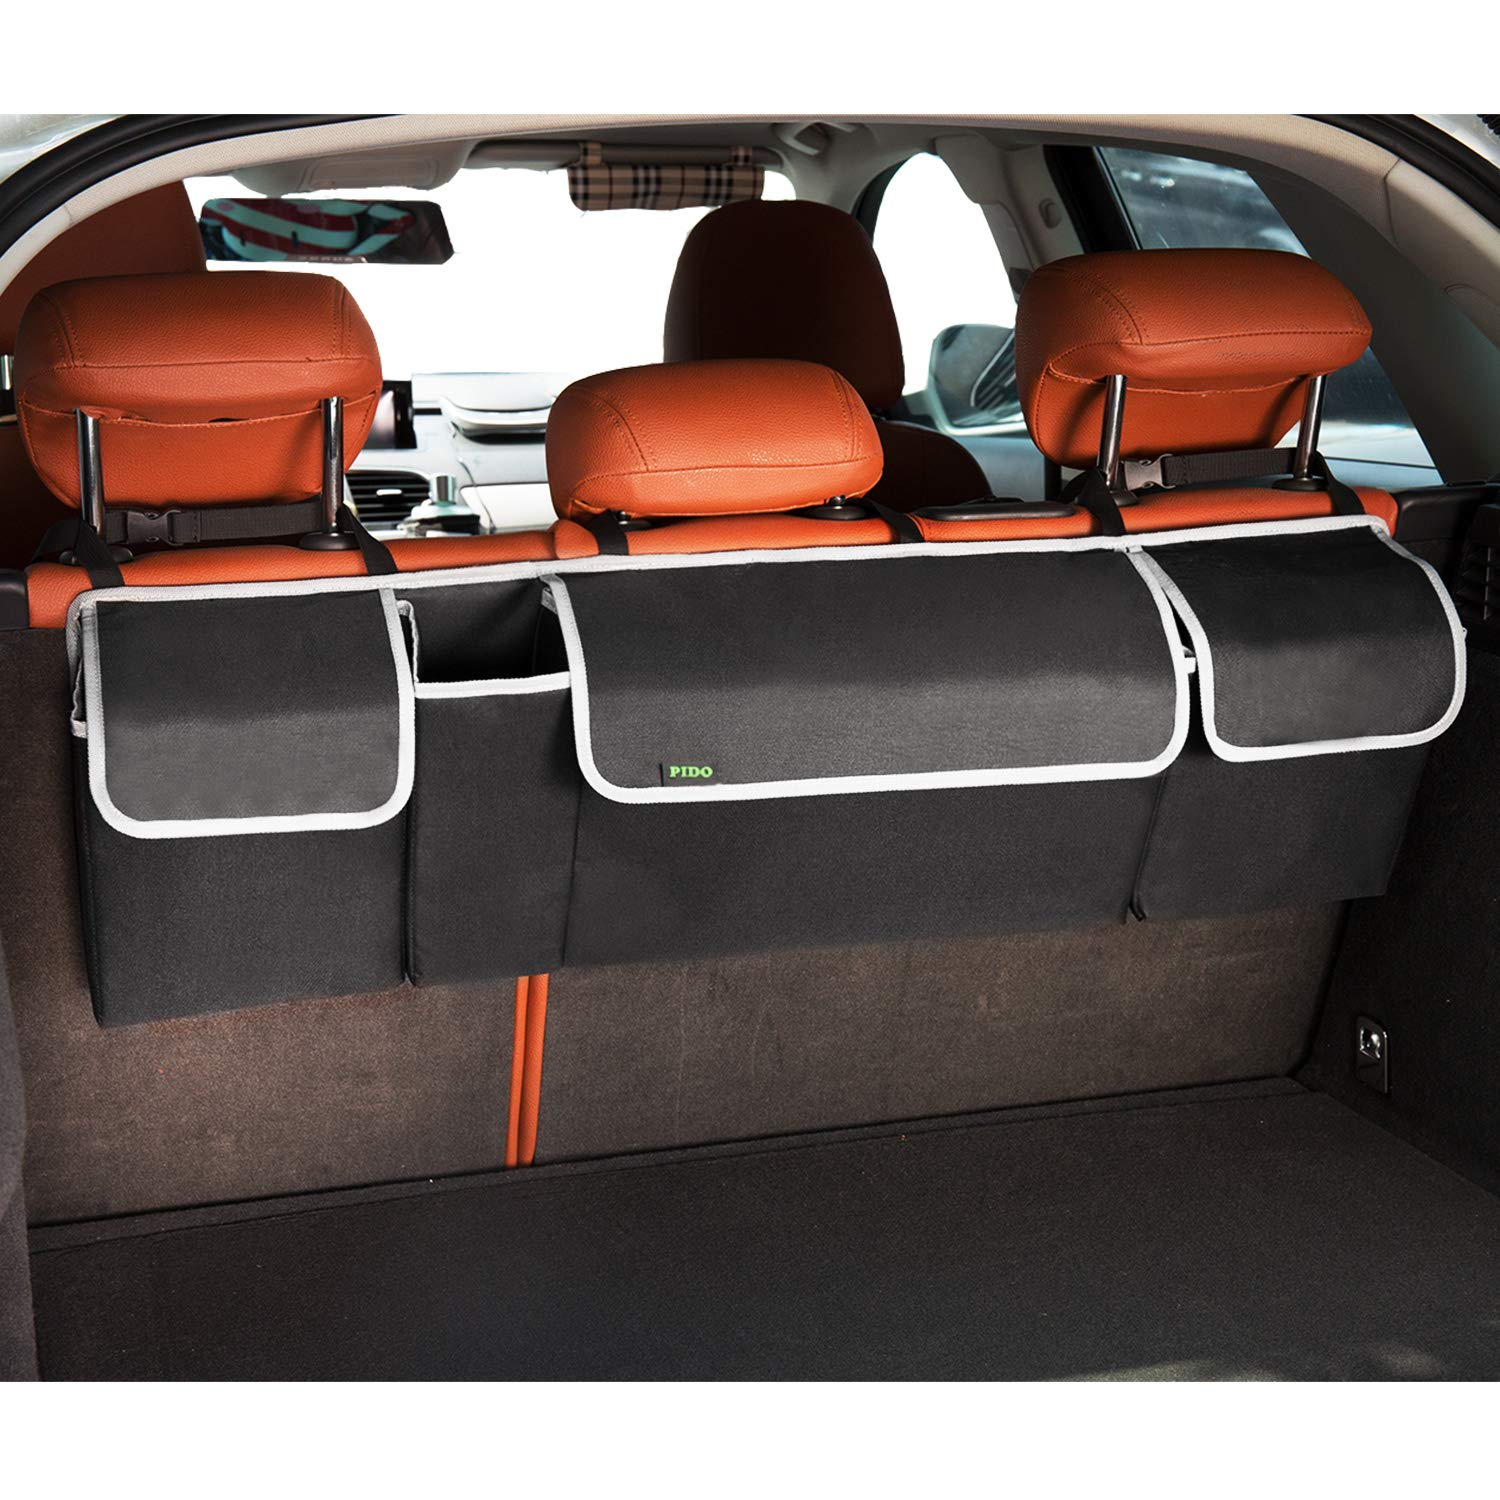 PIDO Backseat Trunk Organizer, Auto Hanging Seat Back Storage Organizer for SUV and Many Vehicles - Free Your Trunk Space by PIDO